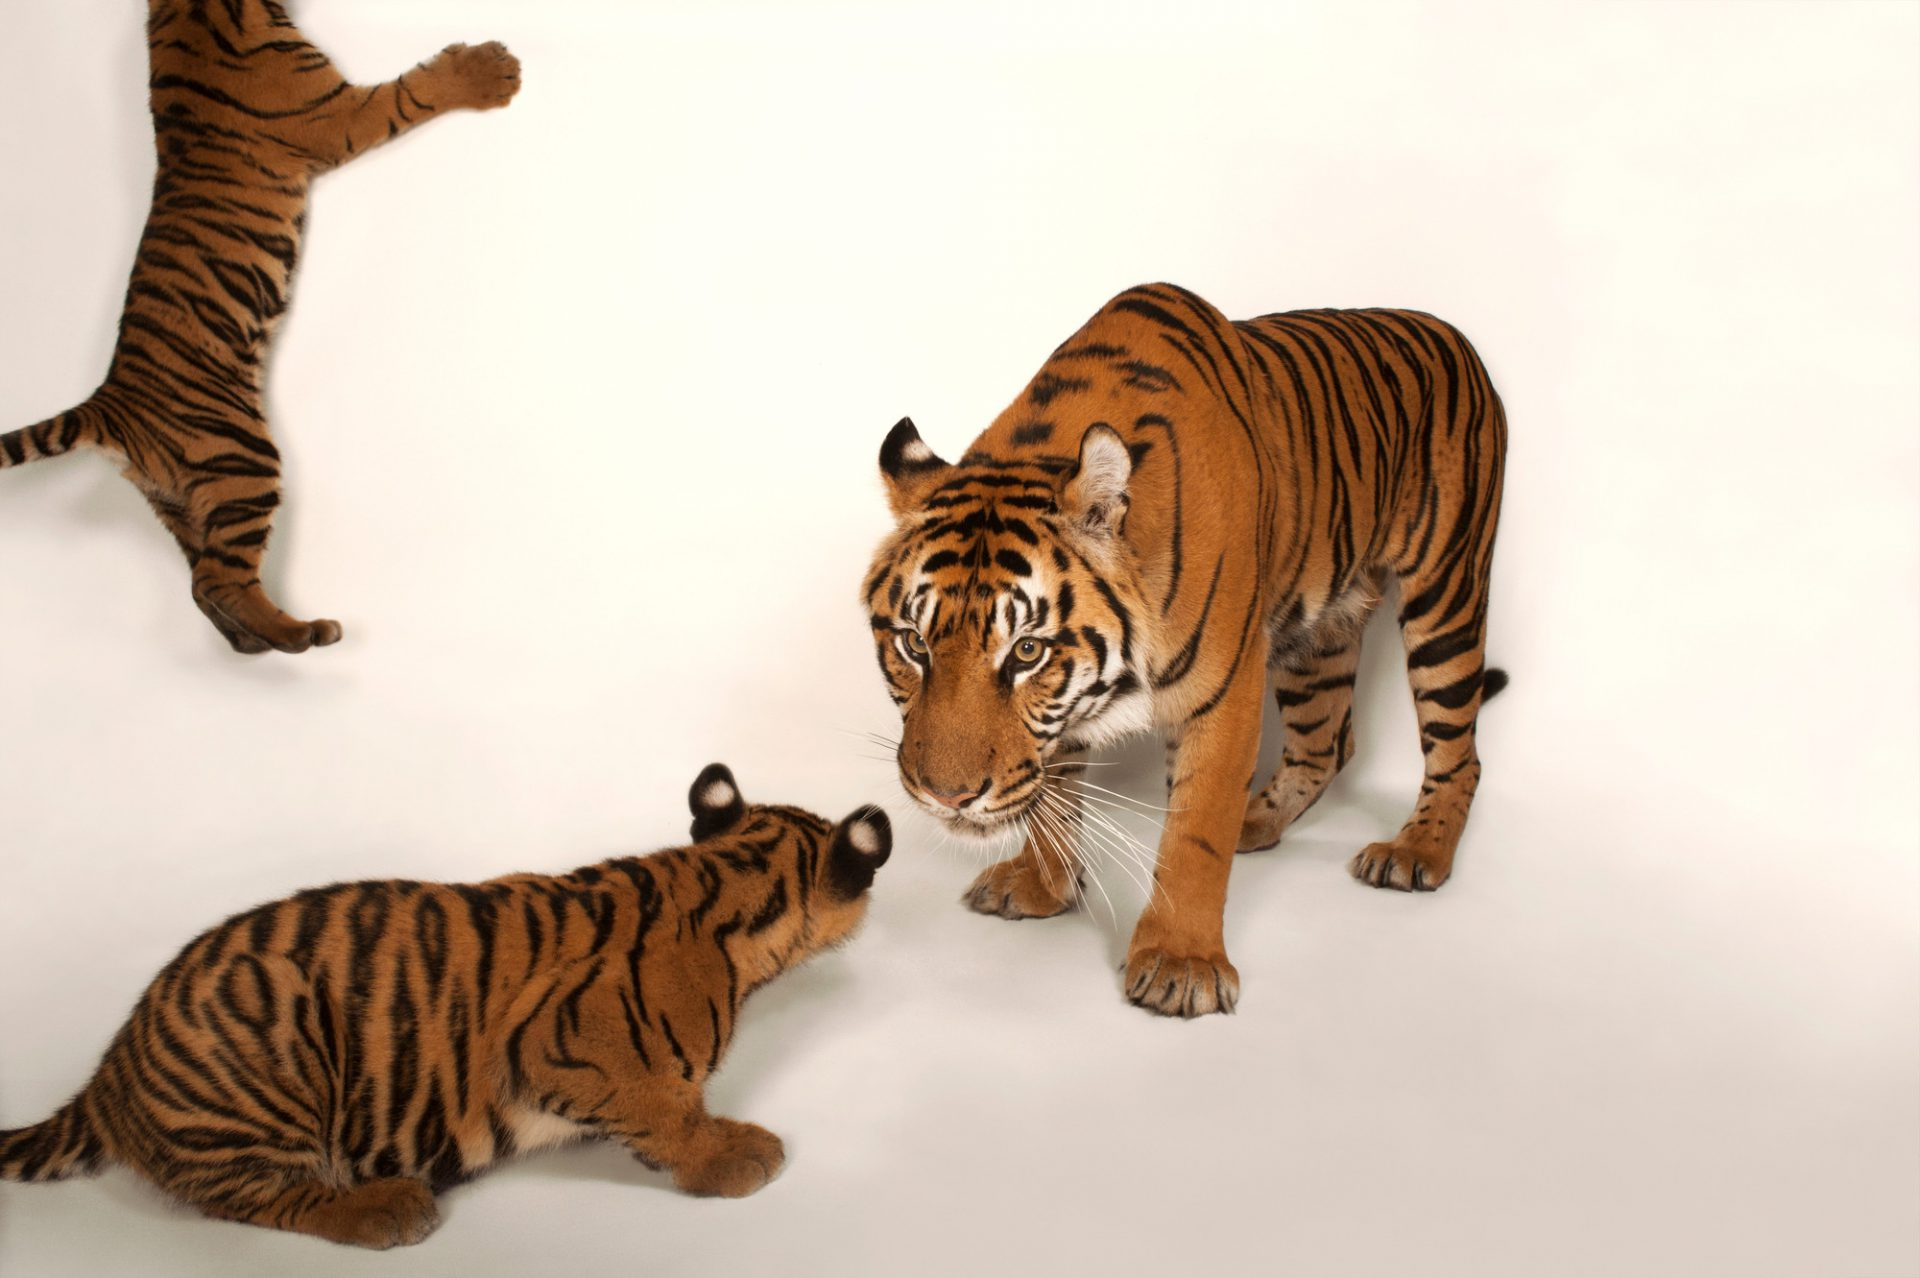 A critically endangered (IUCN) and federally endangered female Sumatran tiger and her two, five-month-old cubs (Panthera tigris sumatrae) at Zoo Atlanta.